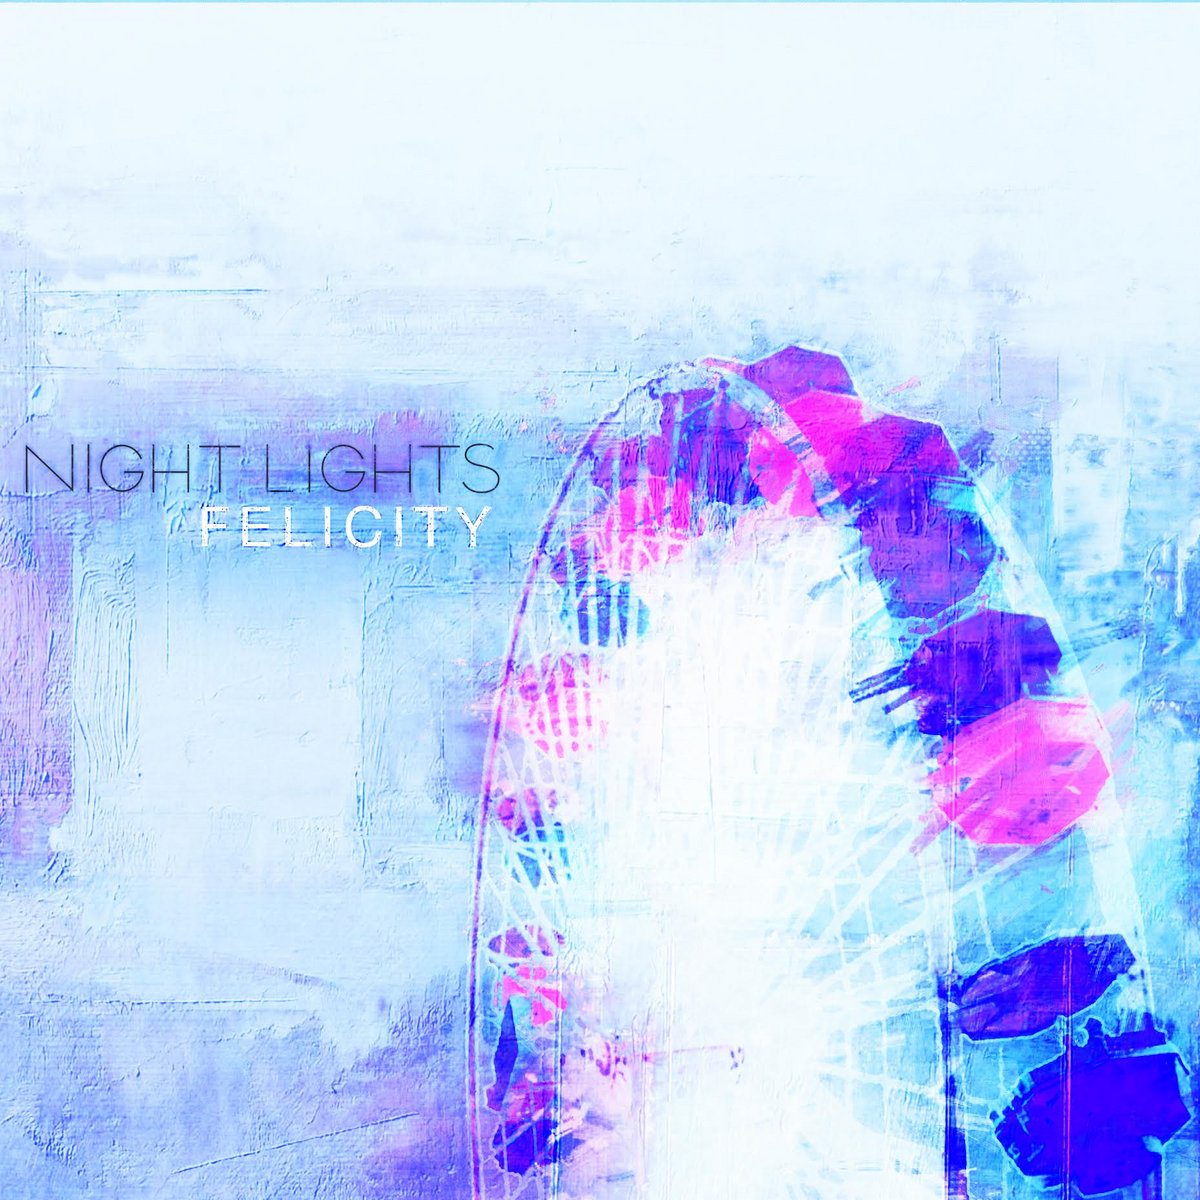 Night lights take my hand lyrics - Discography